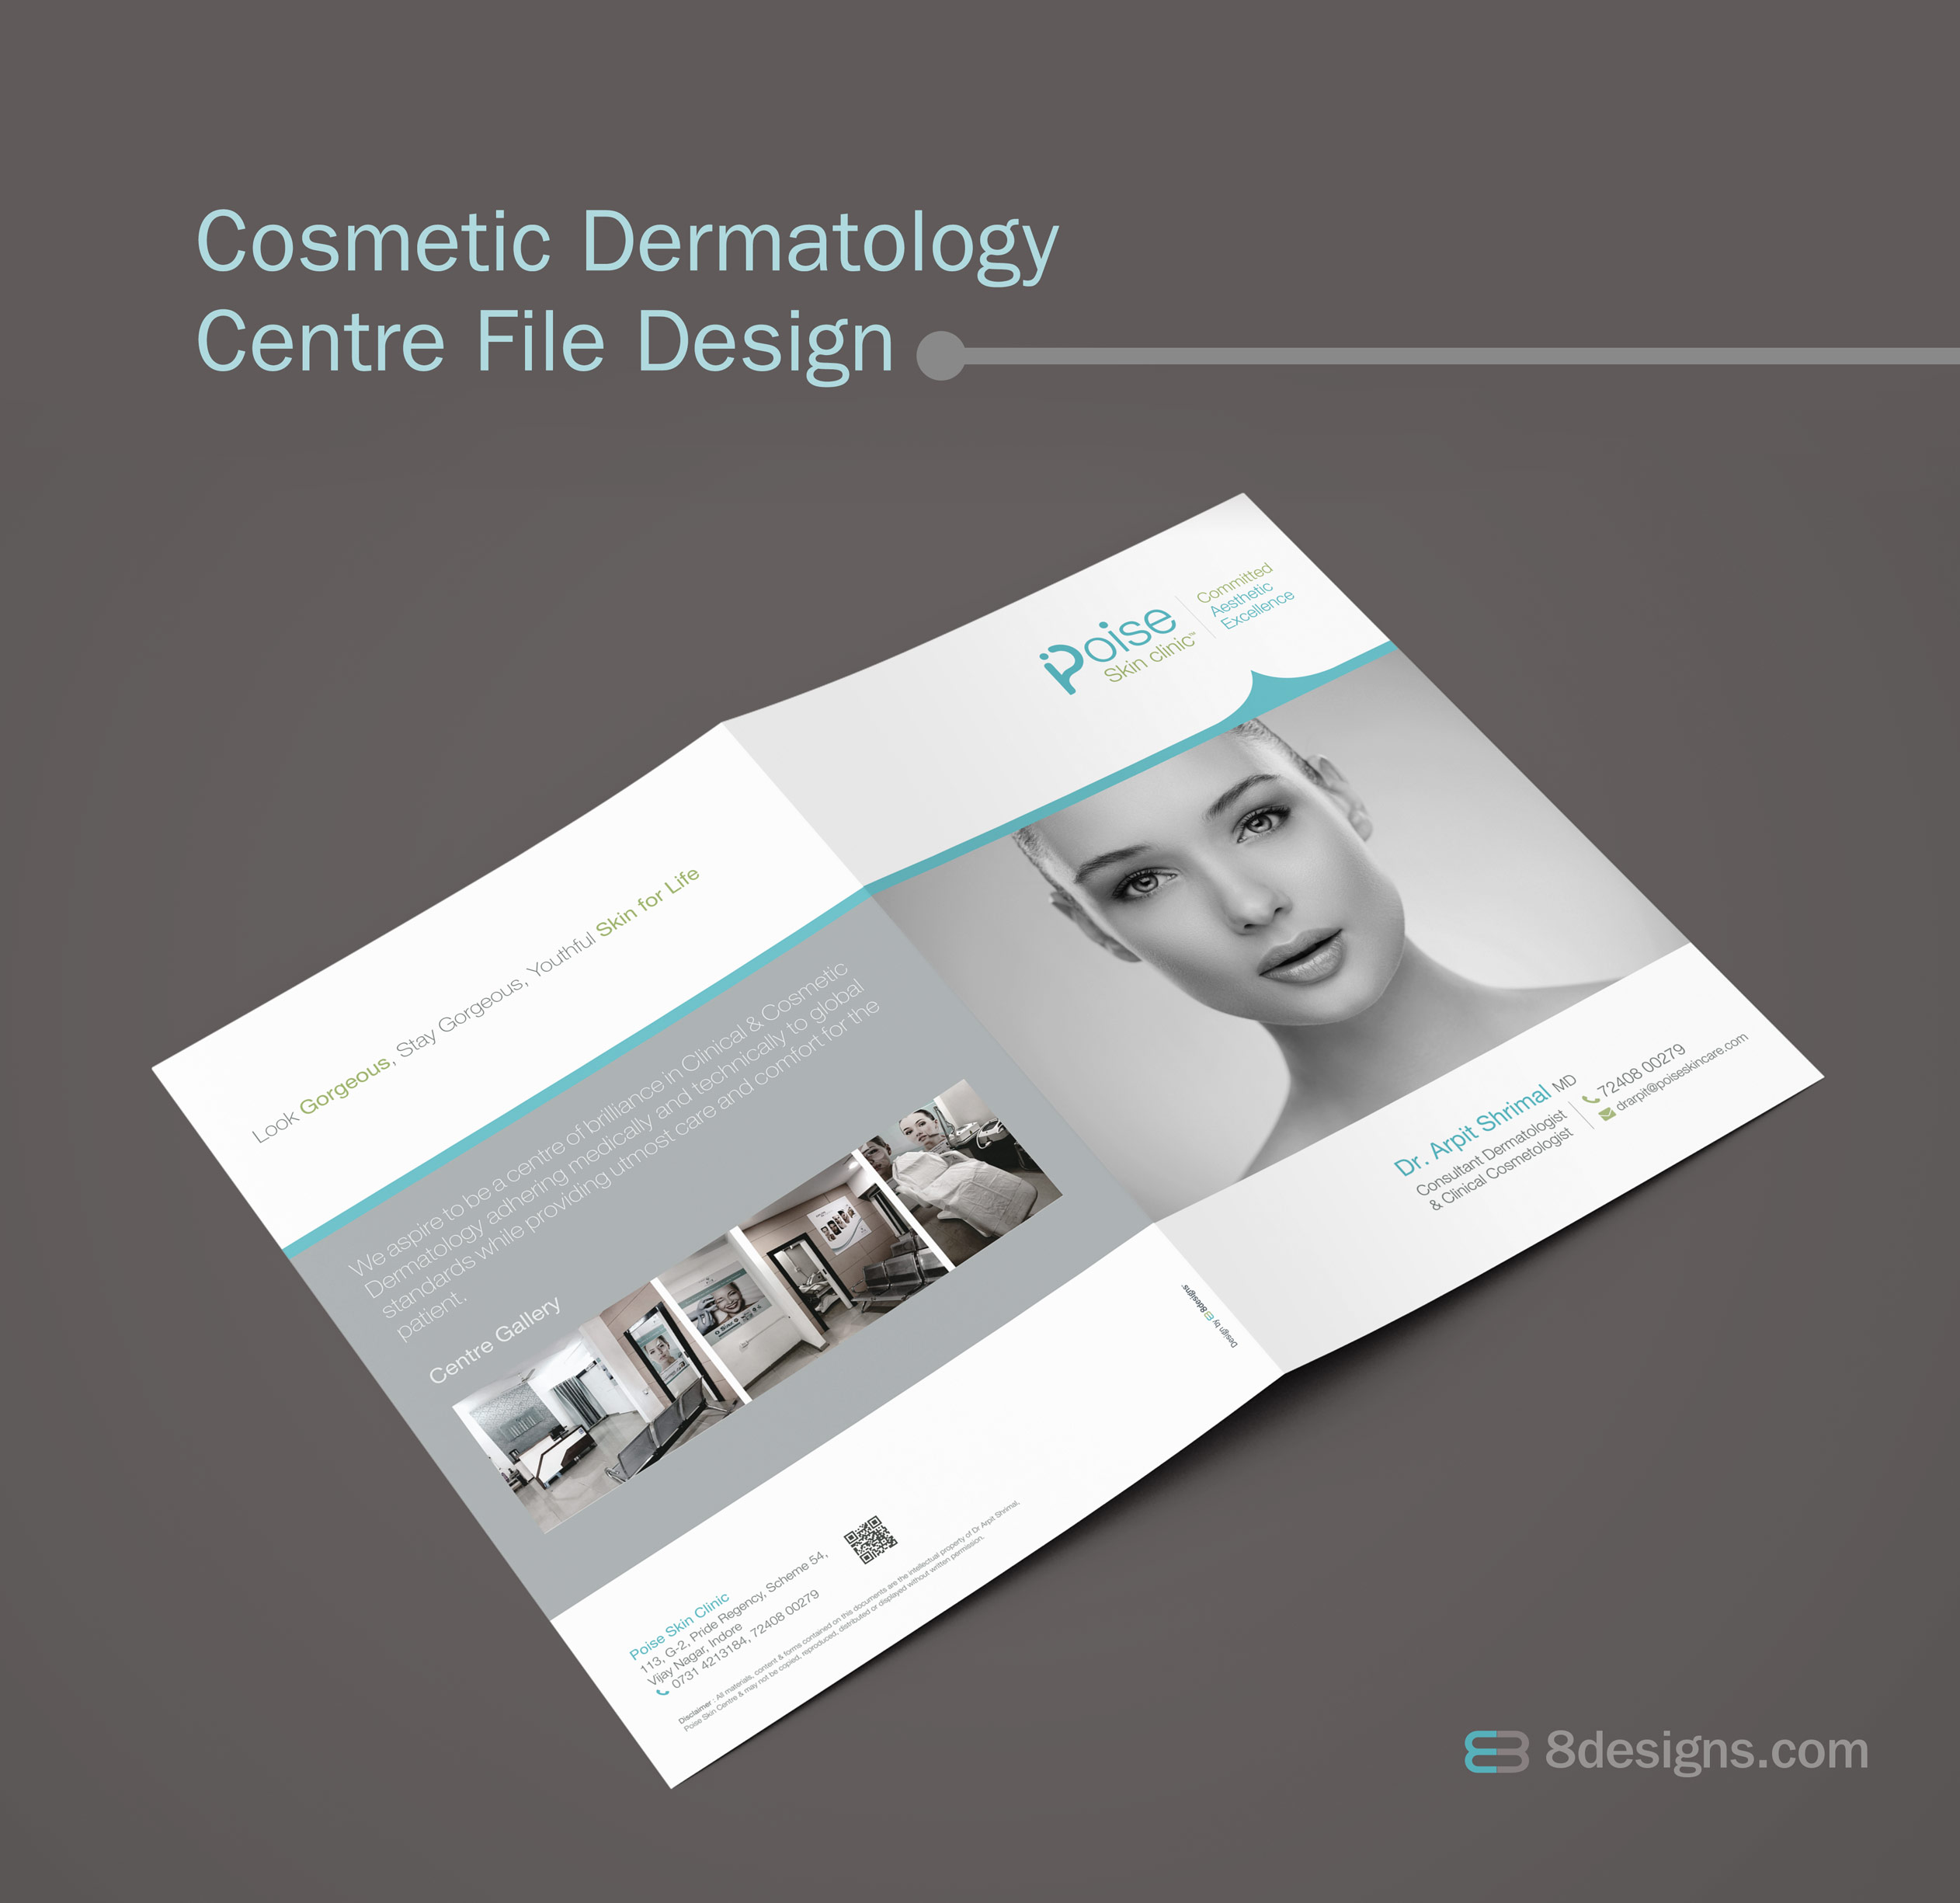 Clinic File Design, Skin Clinic File Design